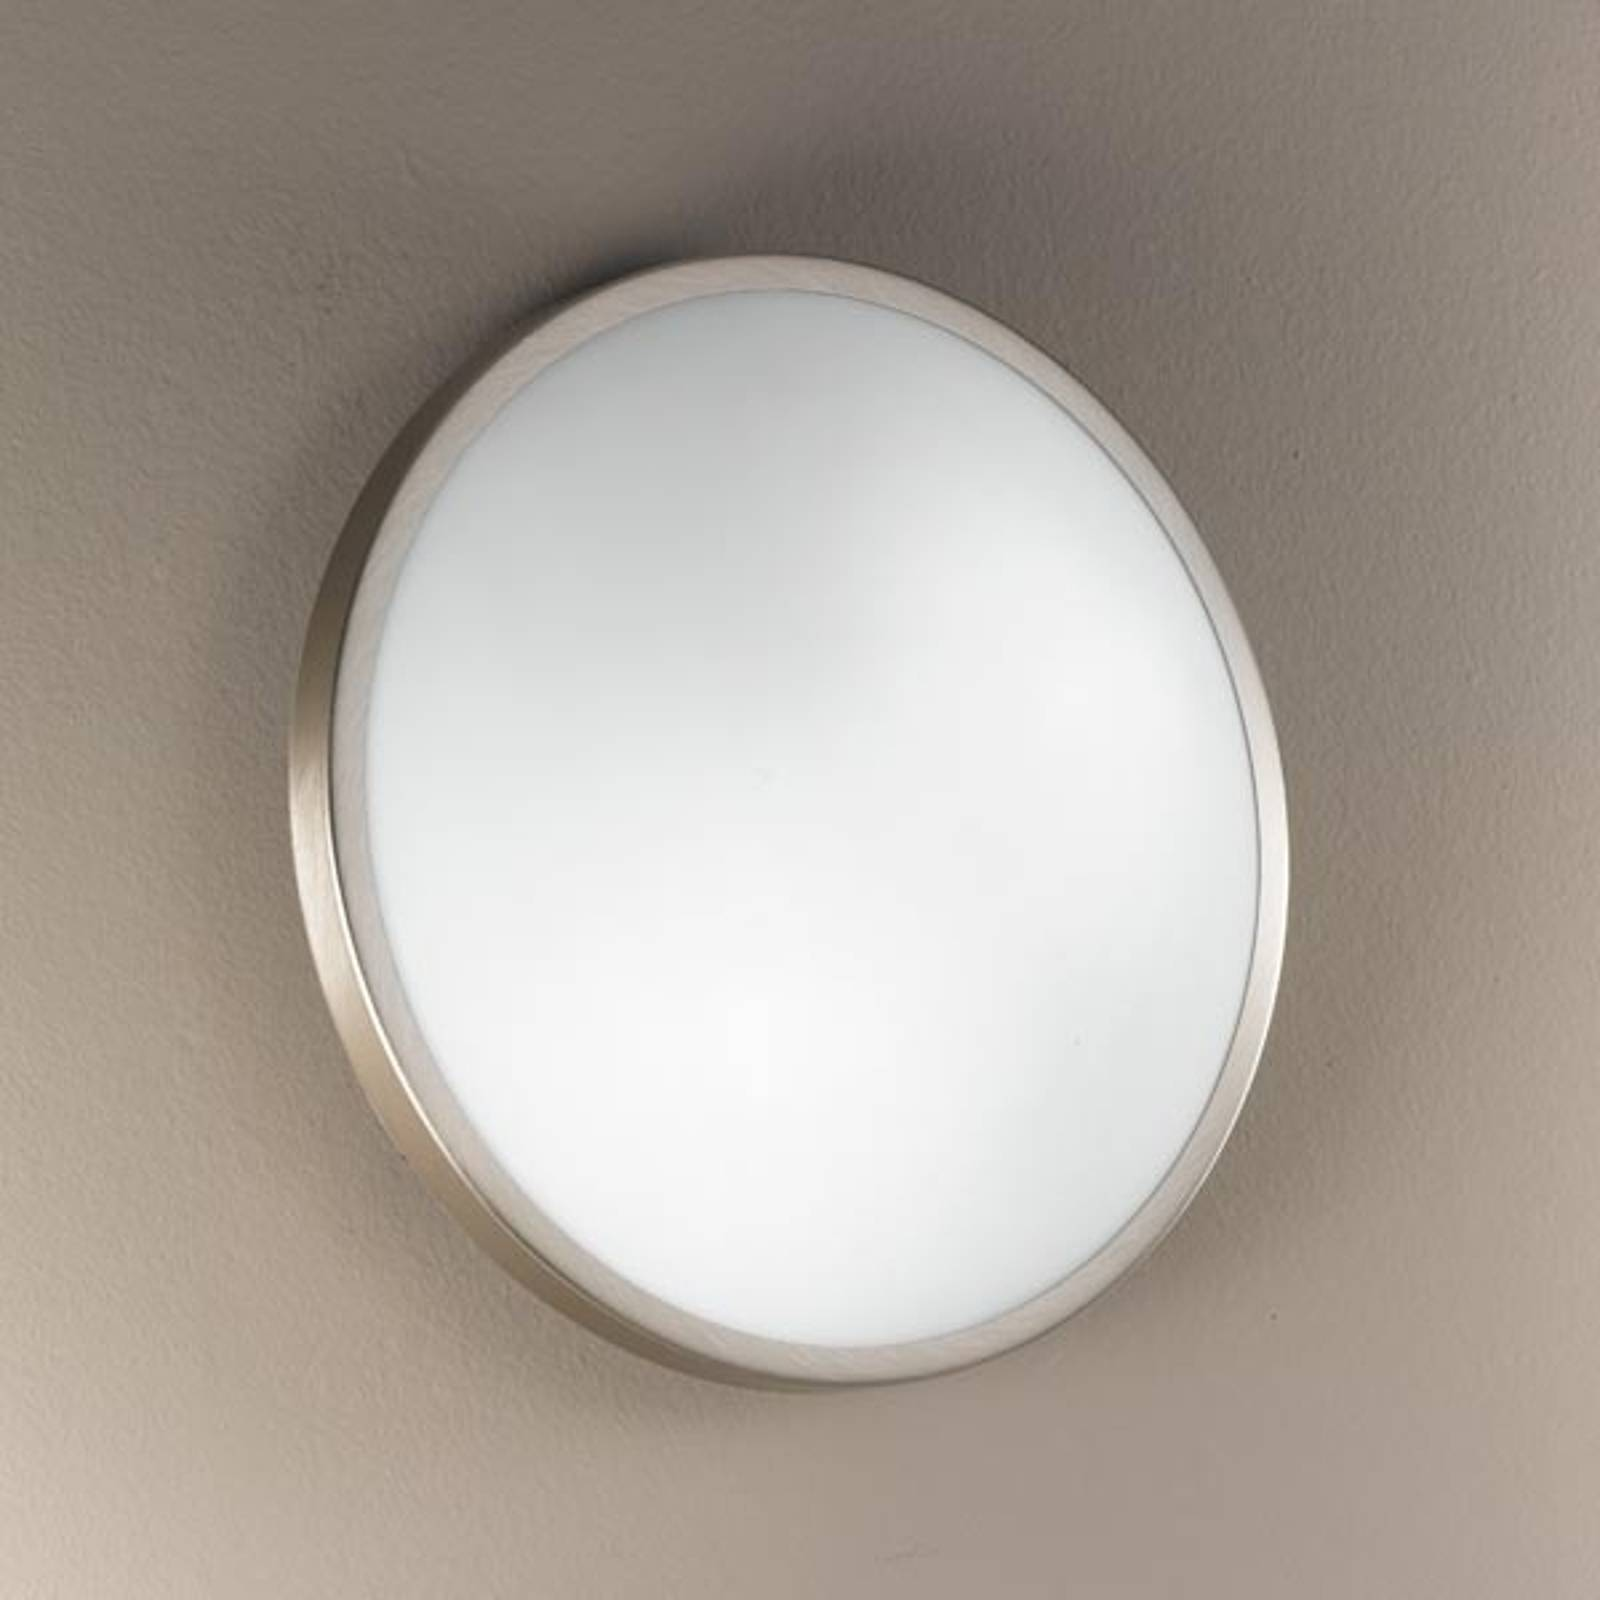 PLAZA ceiling and wall light 21.5 cm nickel from FABAS LUCE